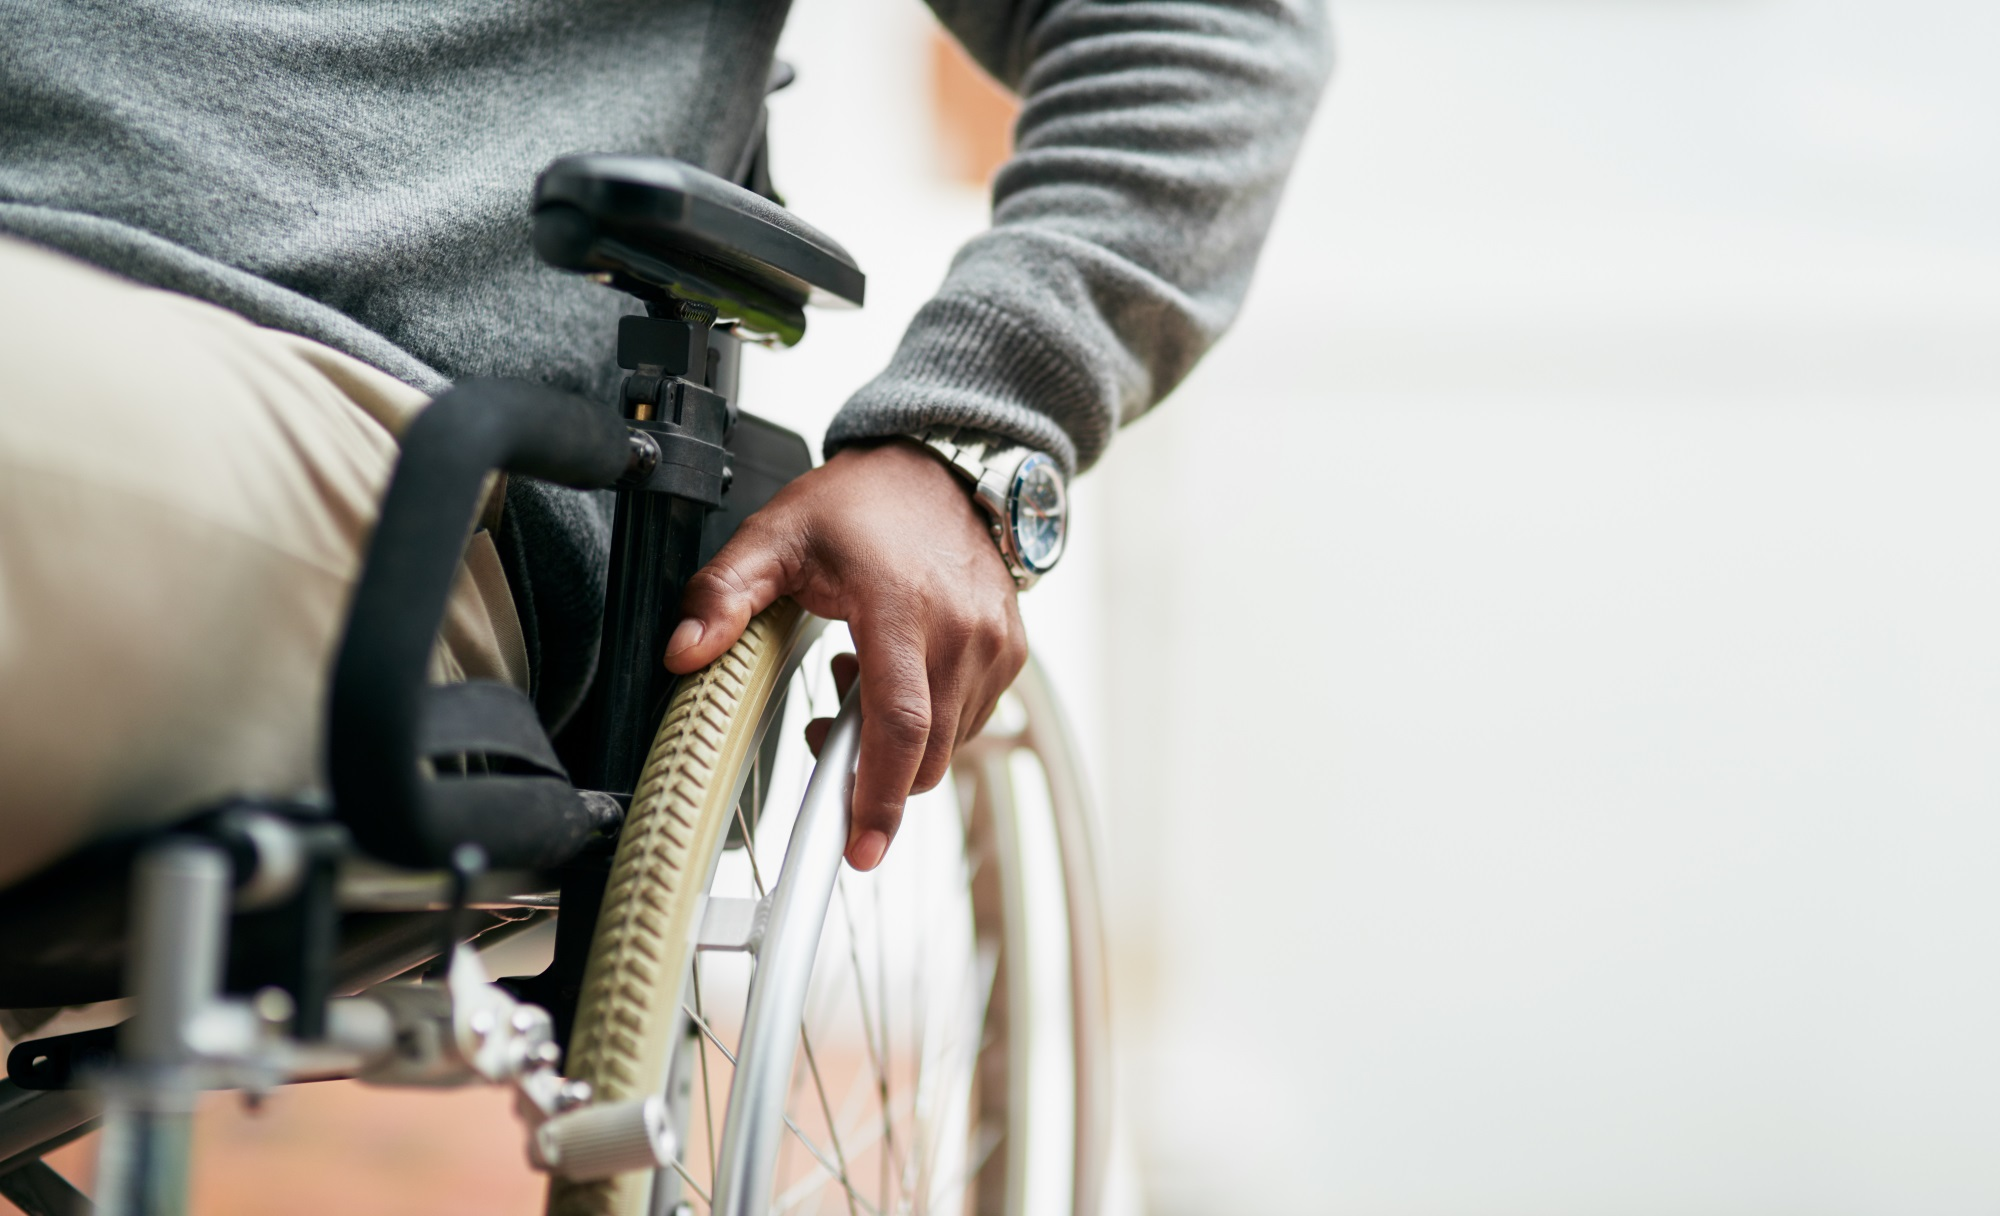 Three Ways to Improve Care for Patients With Disabilities ...